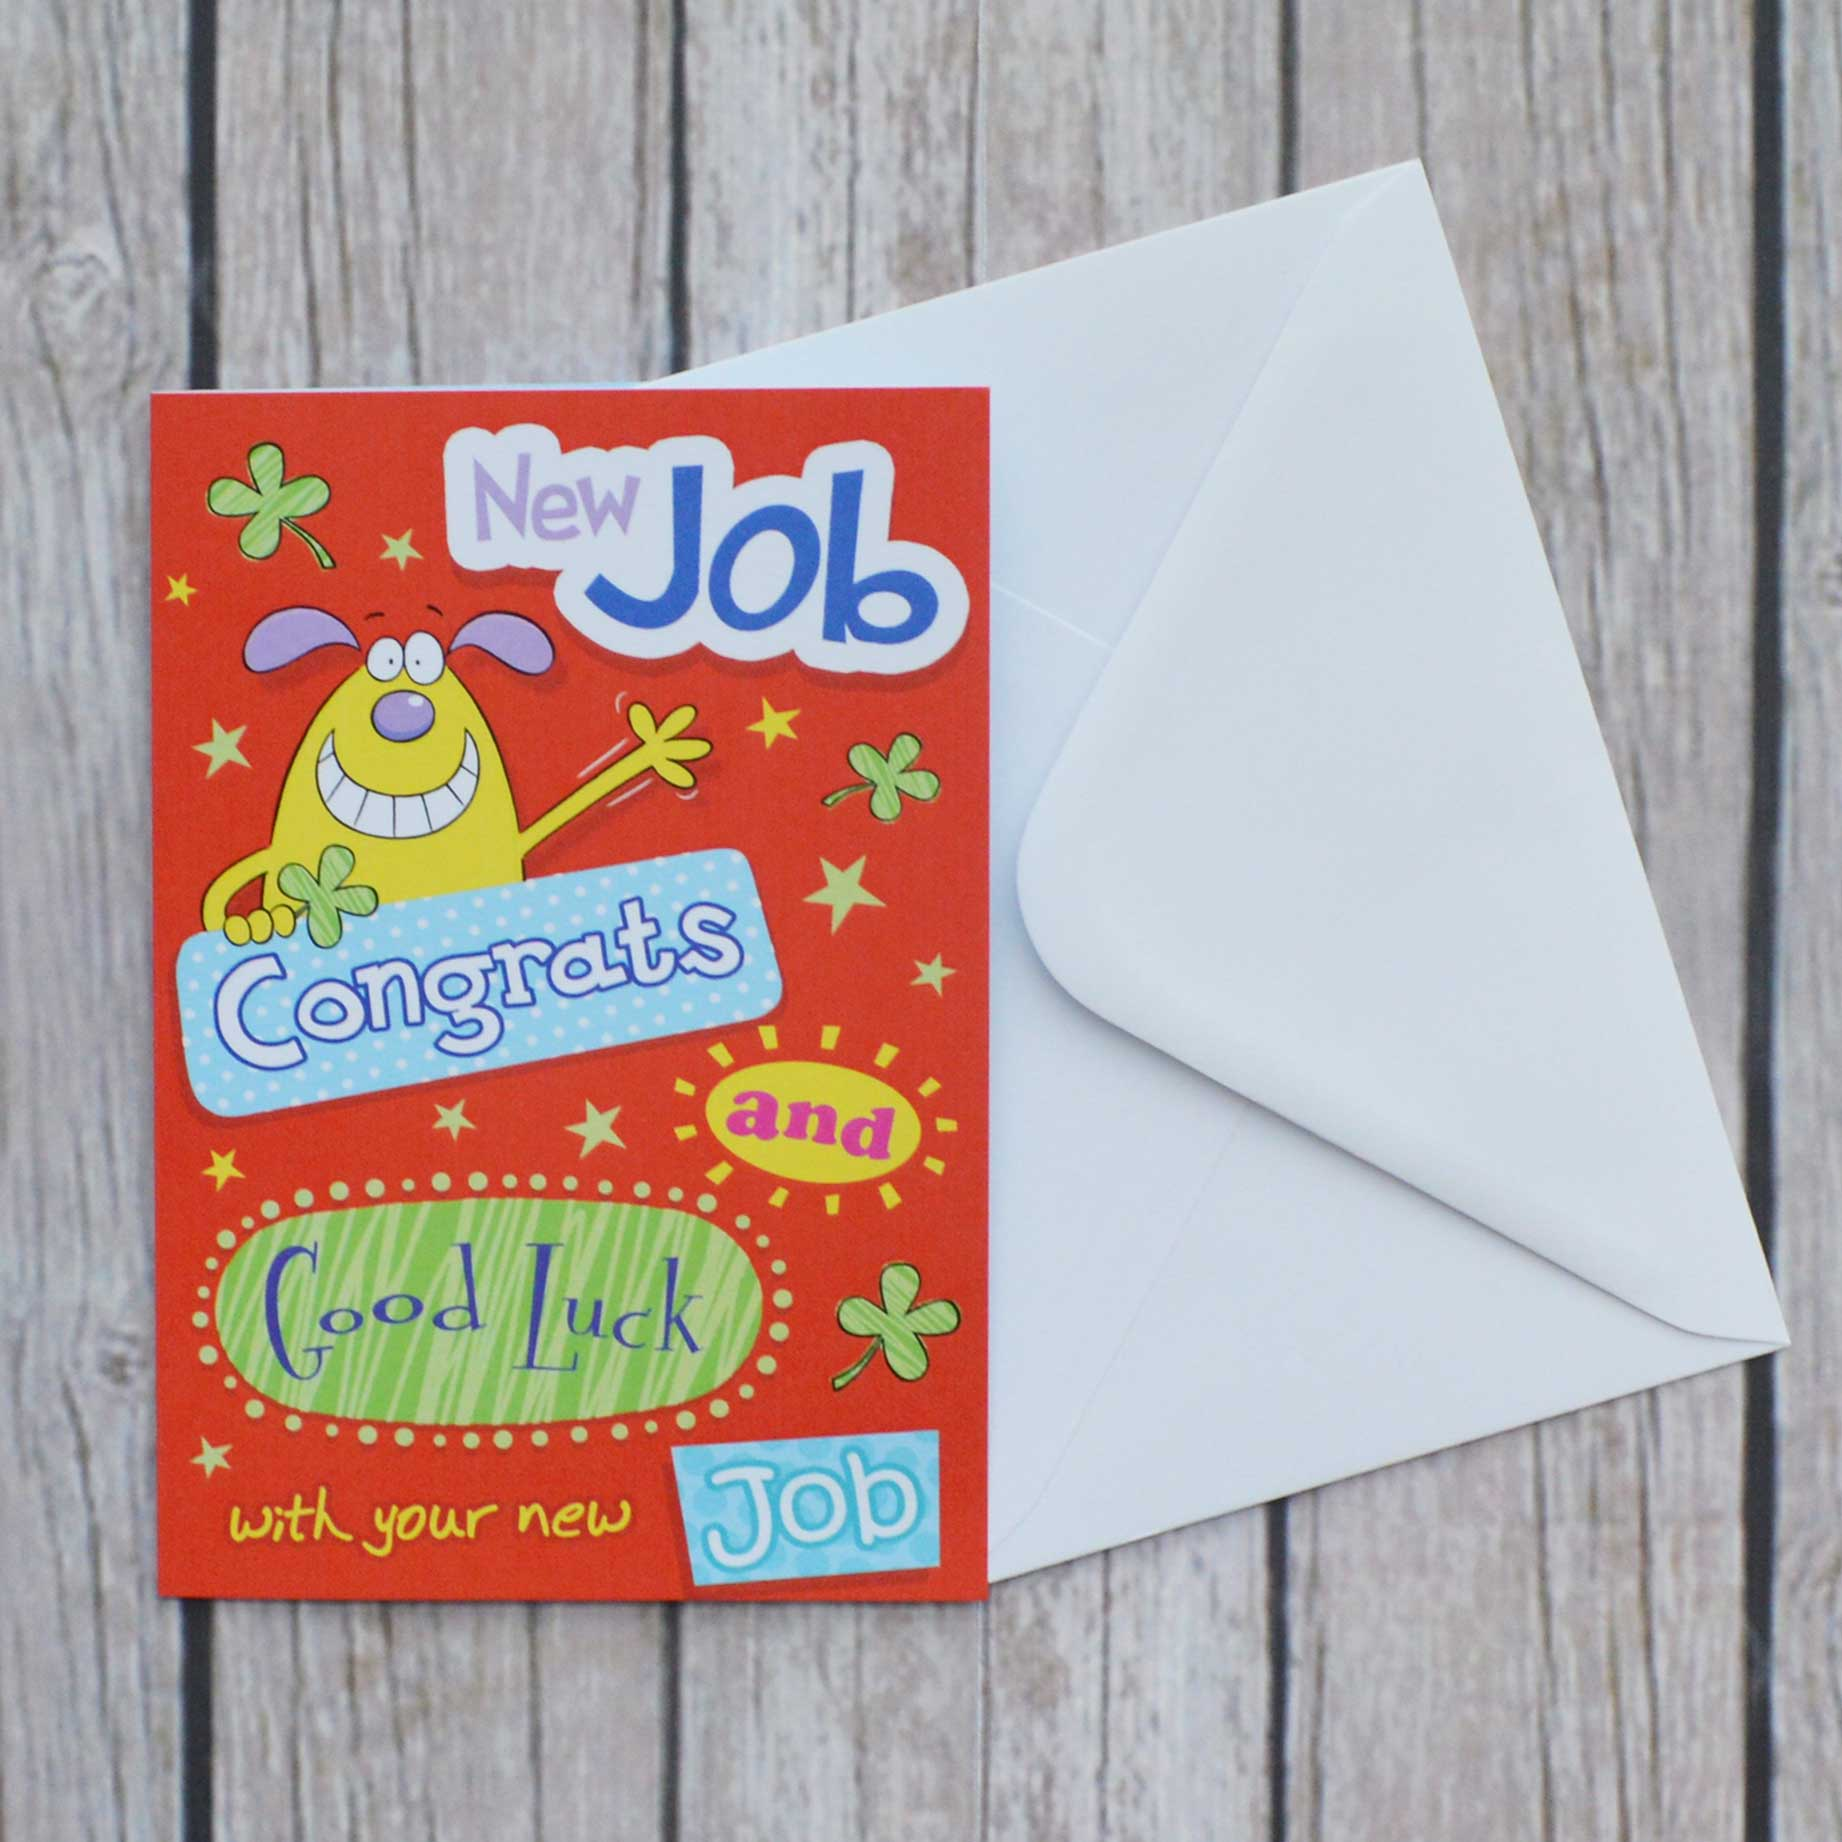 Congratulations New Job Garlanna Greeting Cards